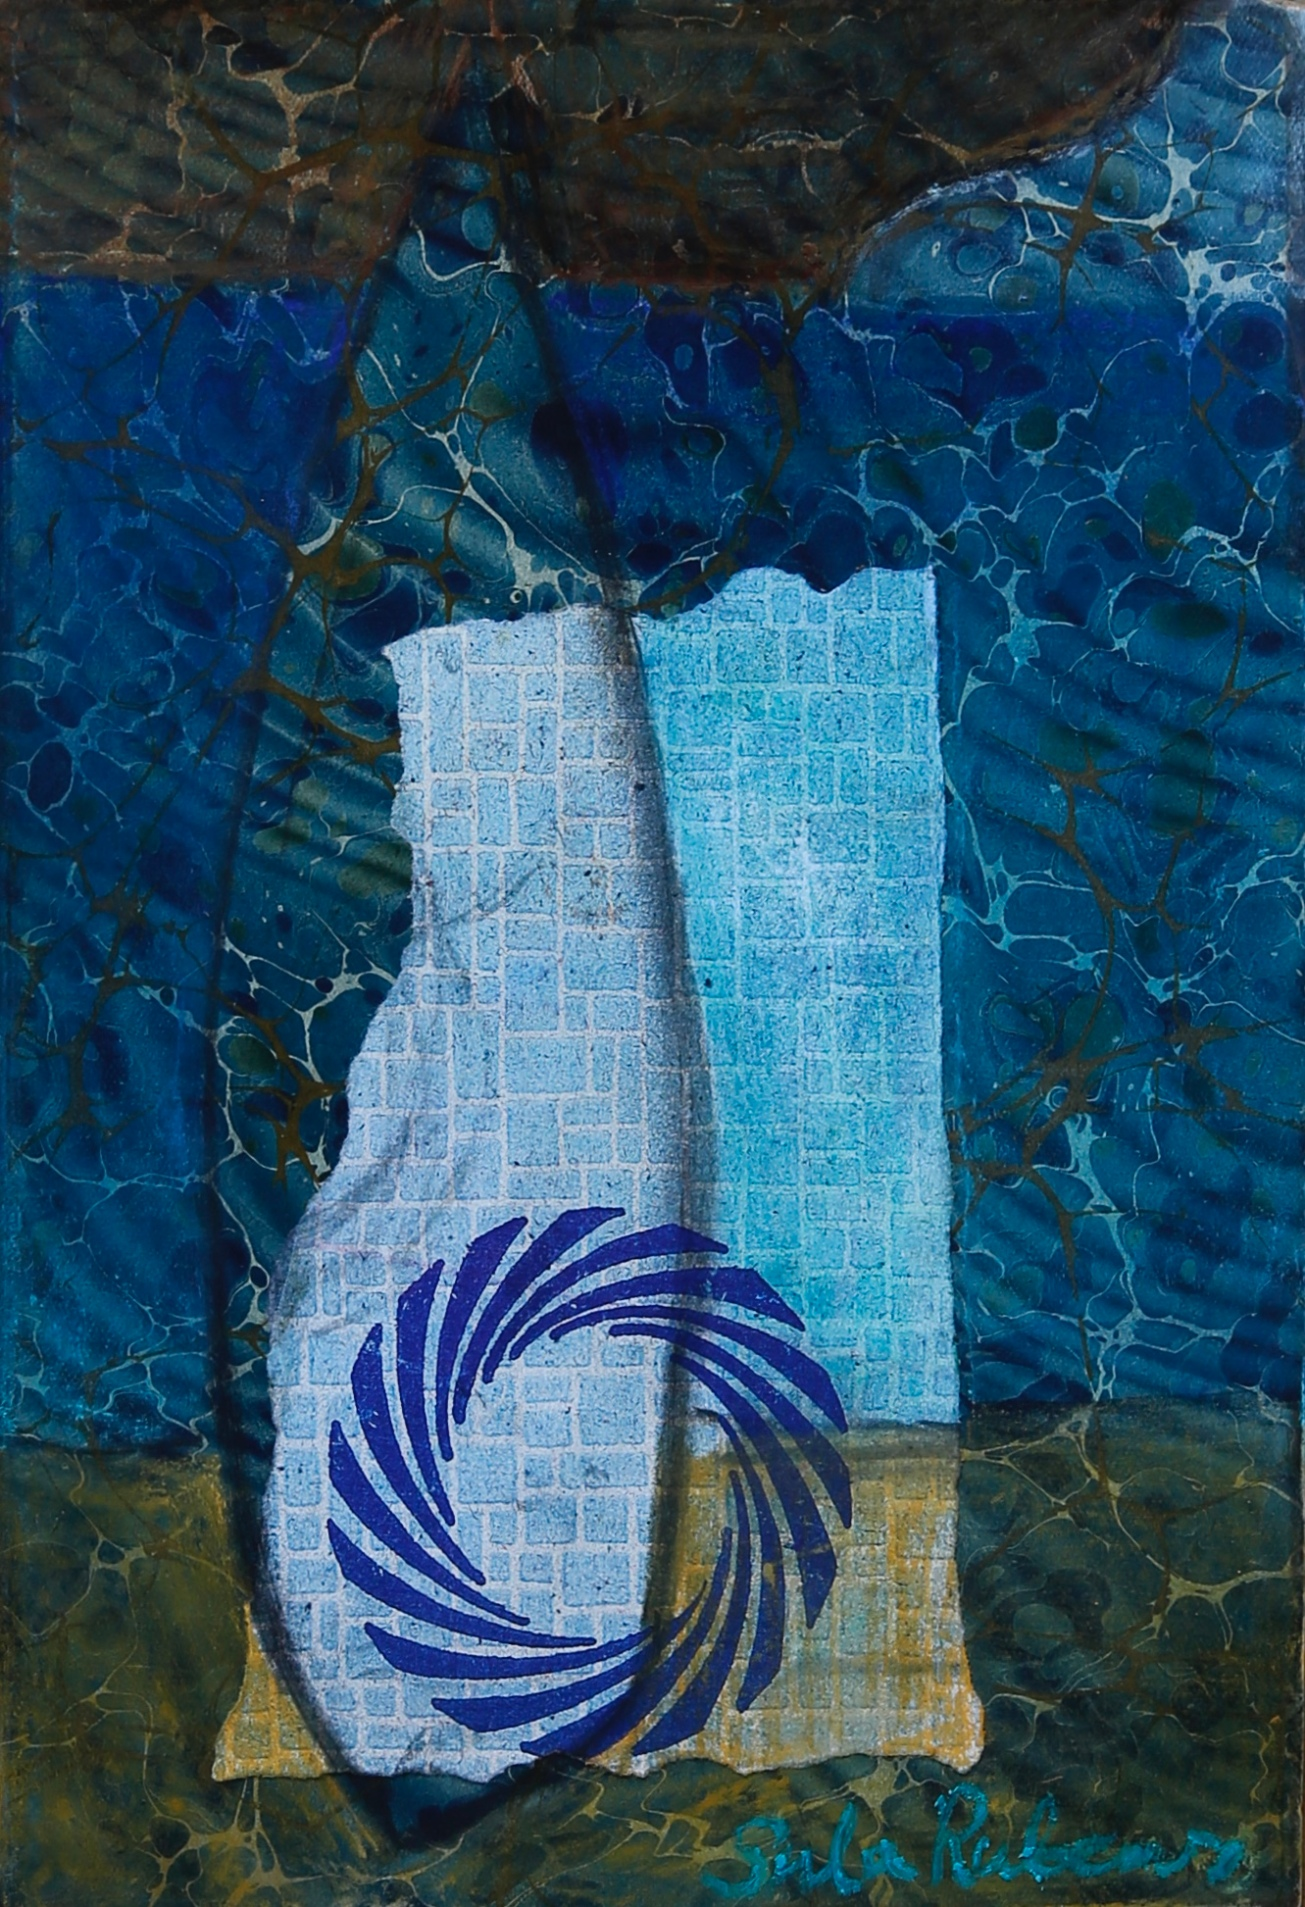 HARBOUR SAIL collage & pastel on paper 23.4 x 16.2 cm